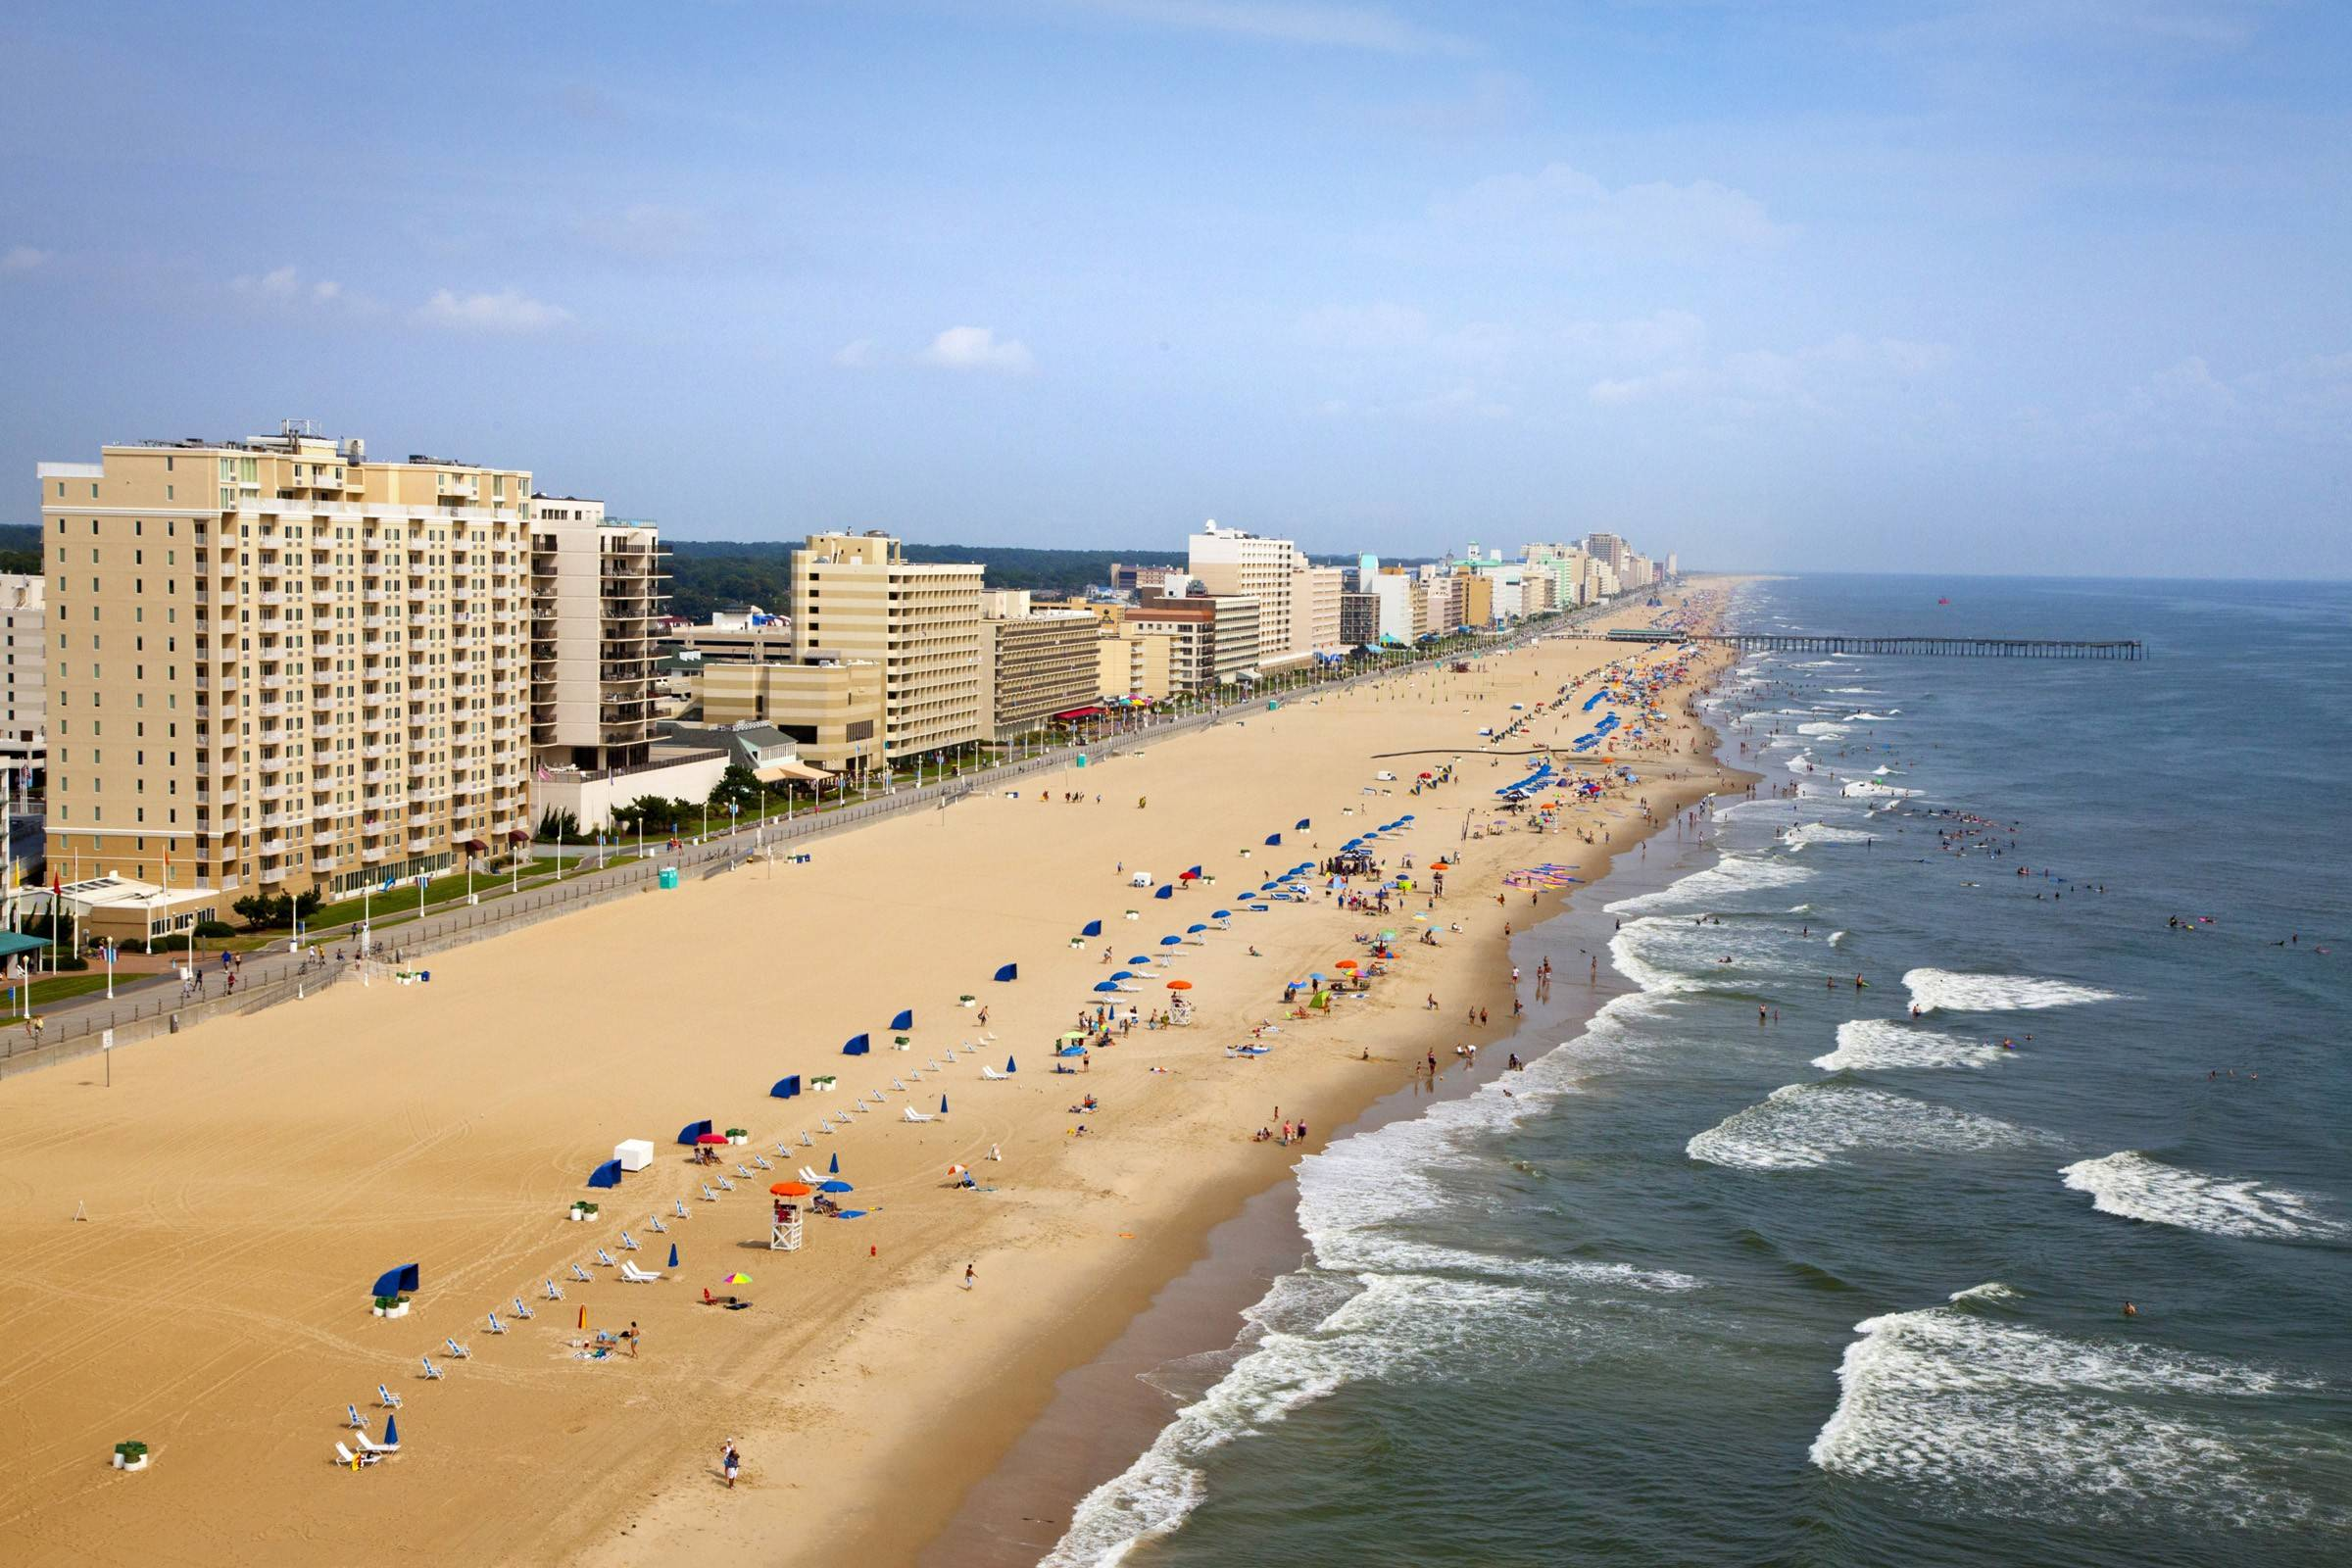 The wide beaches in Virginia Beach are popular with tourists in the summer and are one of a number of free things to see and do in Virginia's largest city.